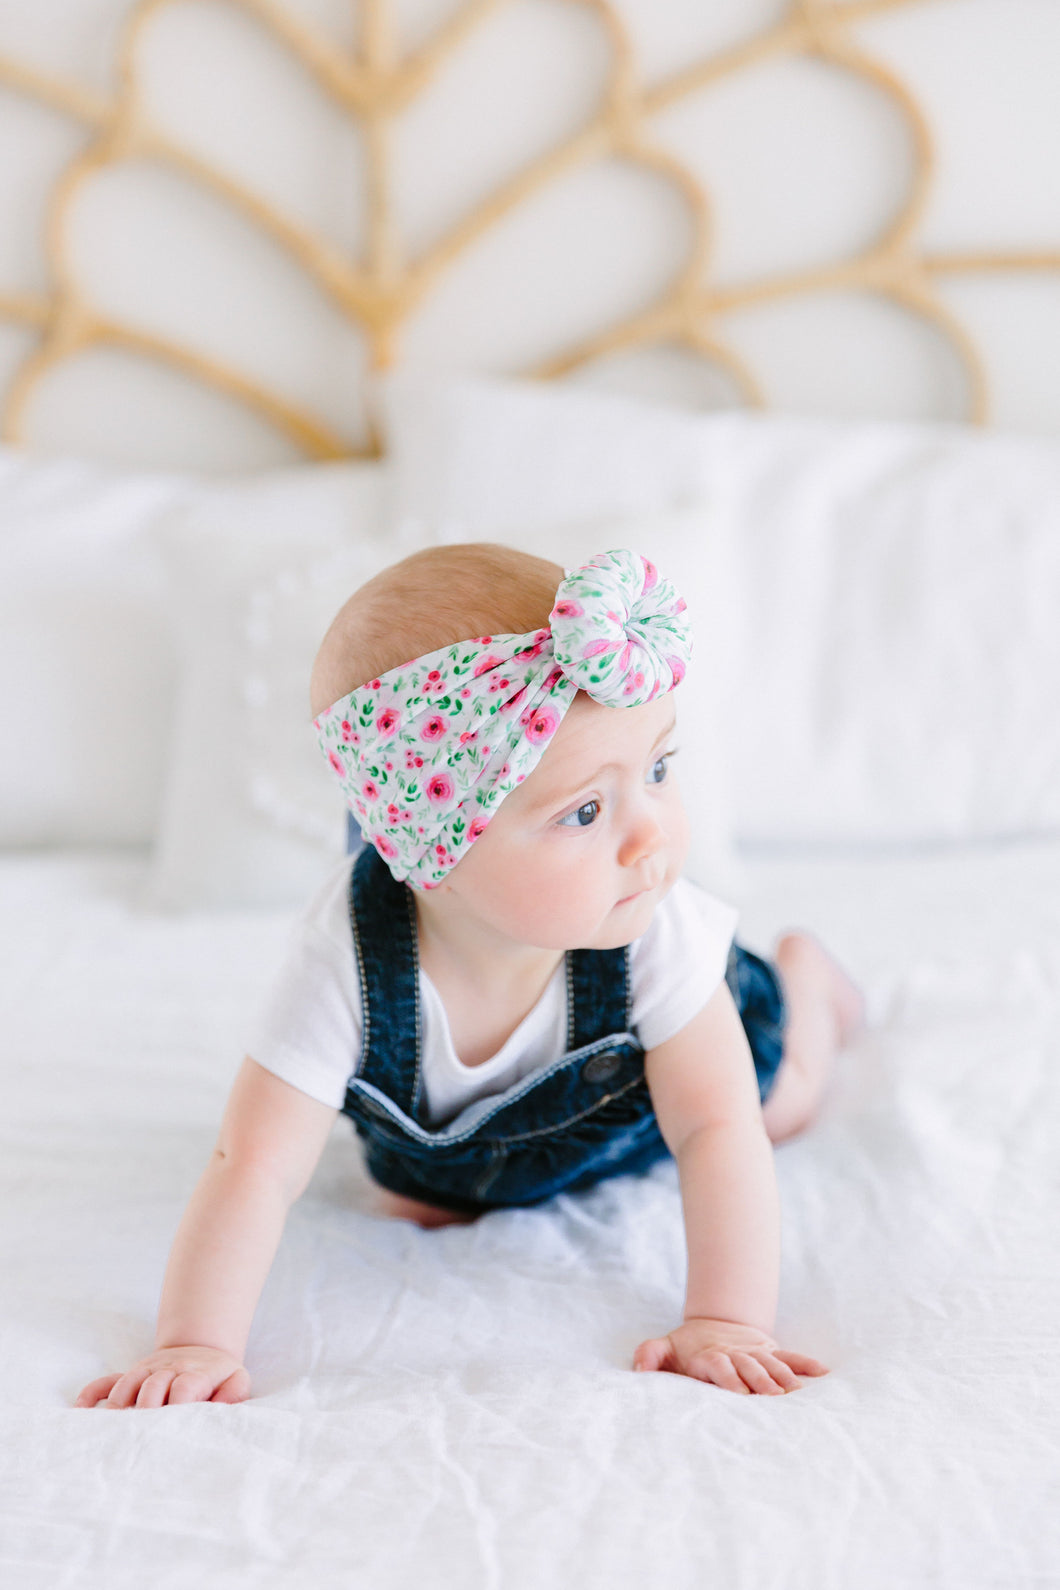 GREEN/PINK FLORAL TOPKNOT HEADBAND